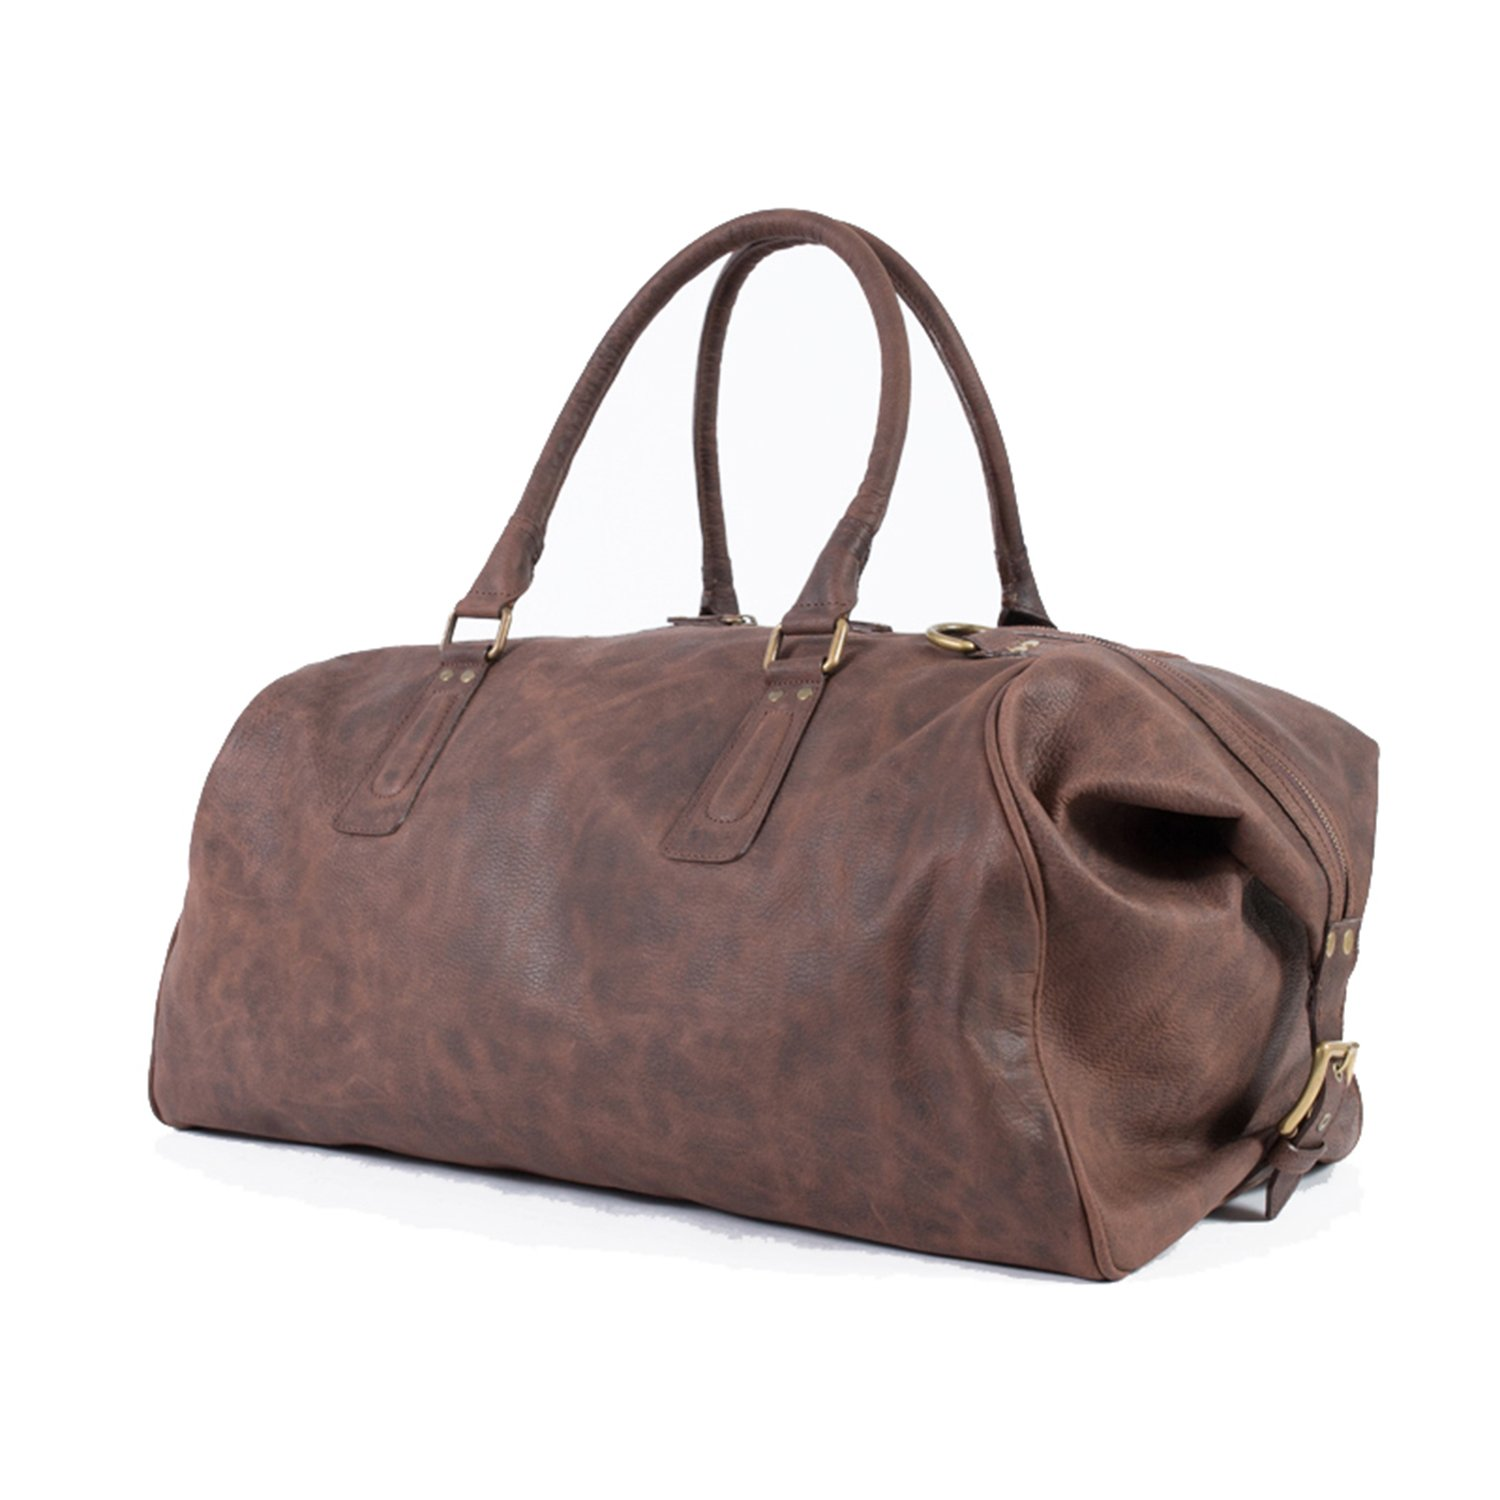 Pampa Vintage  Chocolate Brown Handmade Leather Duffle Bag   ROQUE c0d90e0839